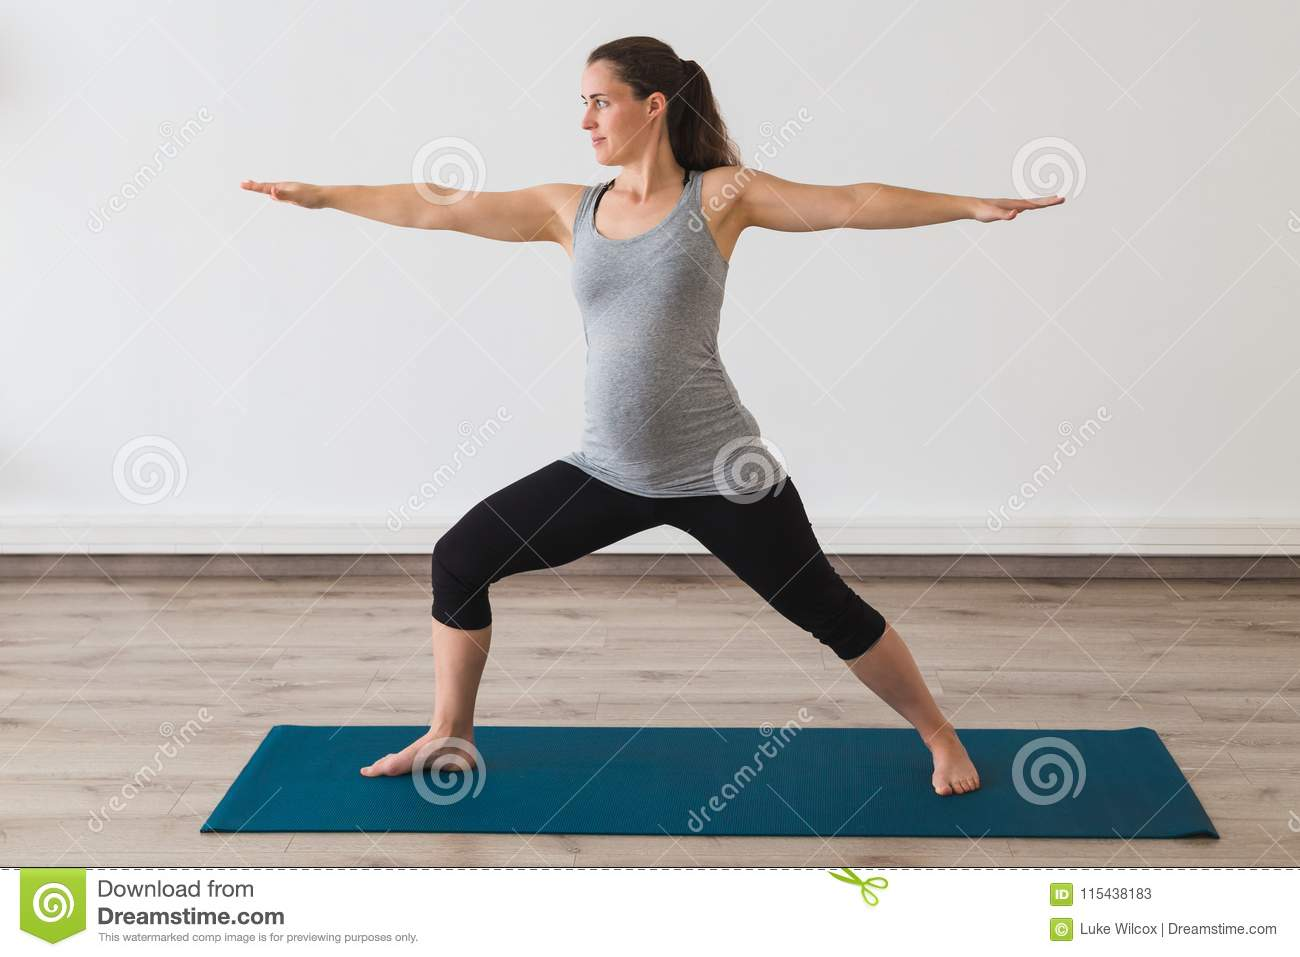 Standing Yoga Poses For Pregnant